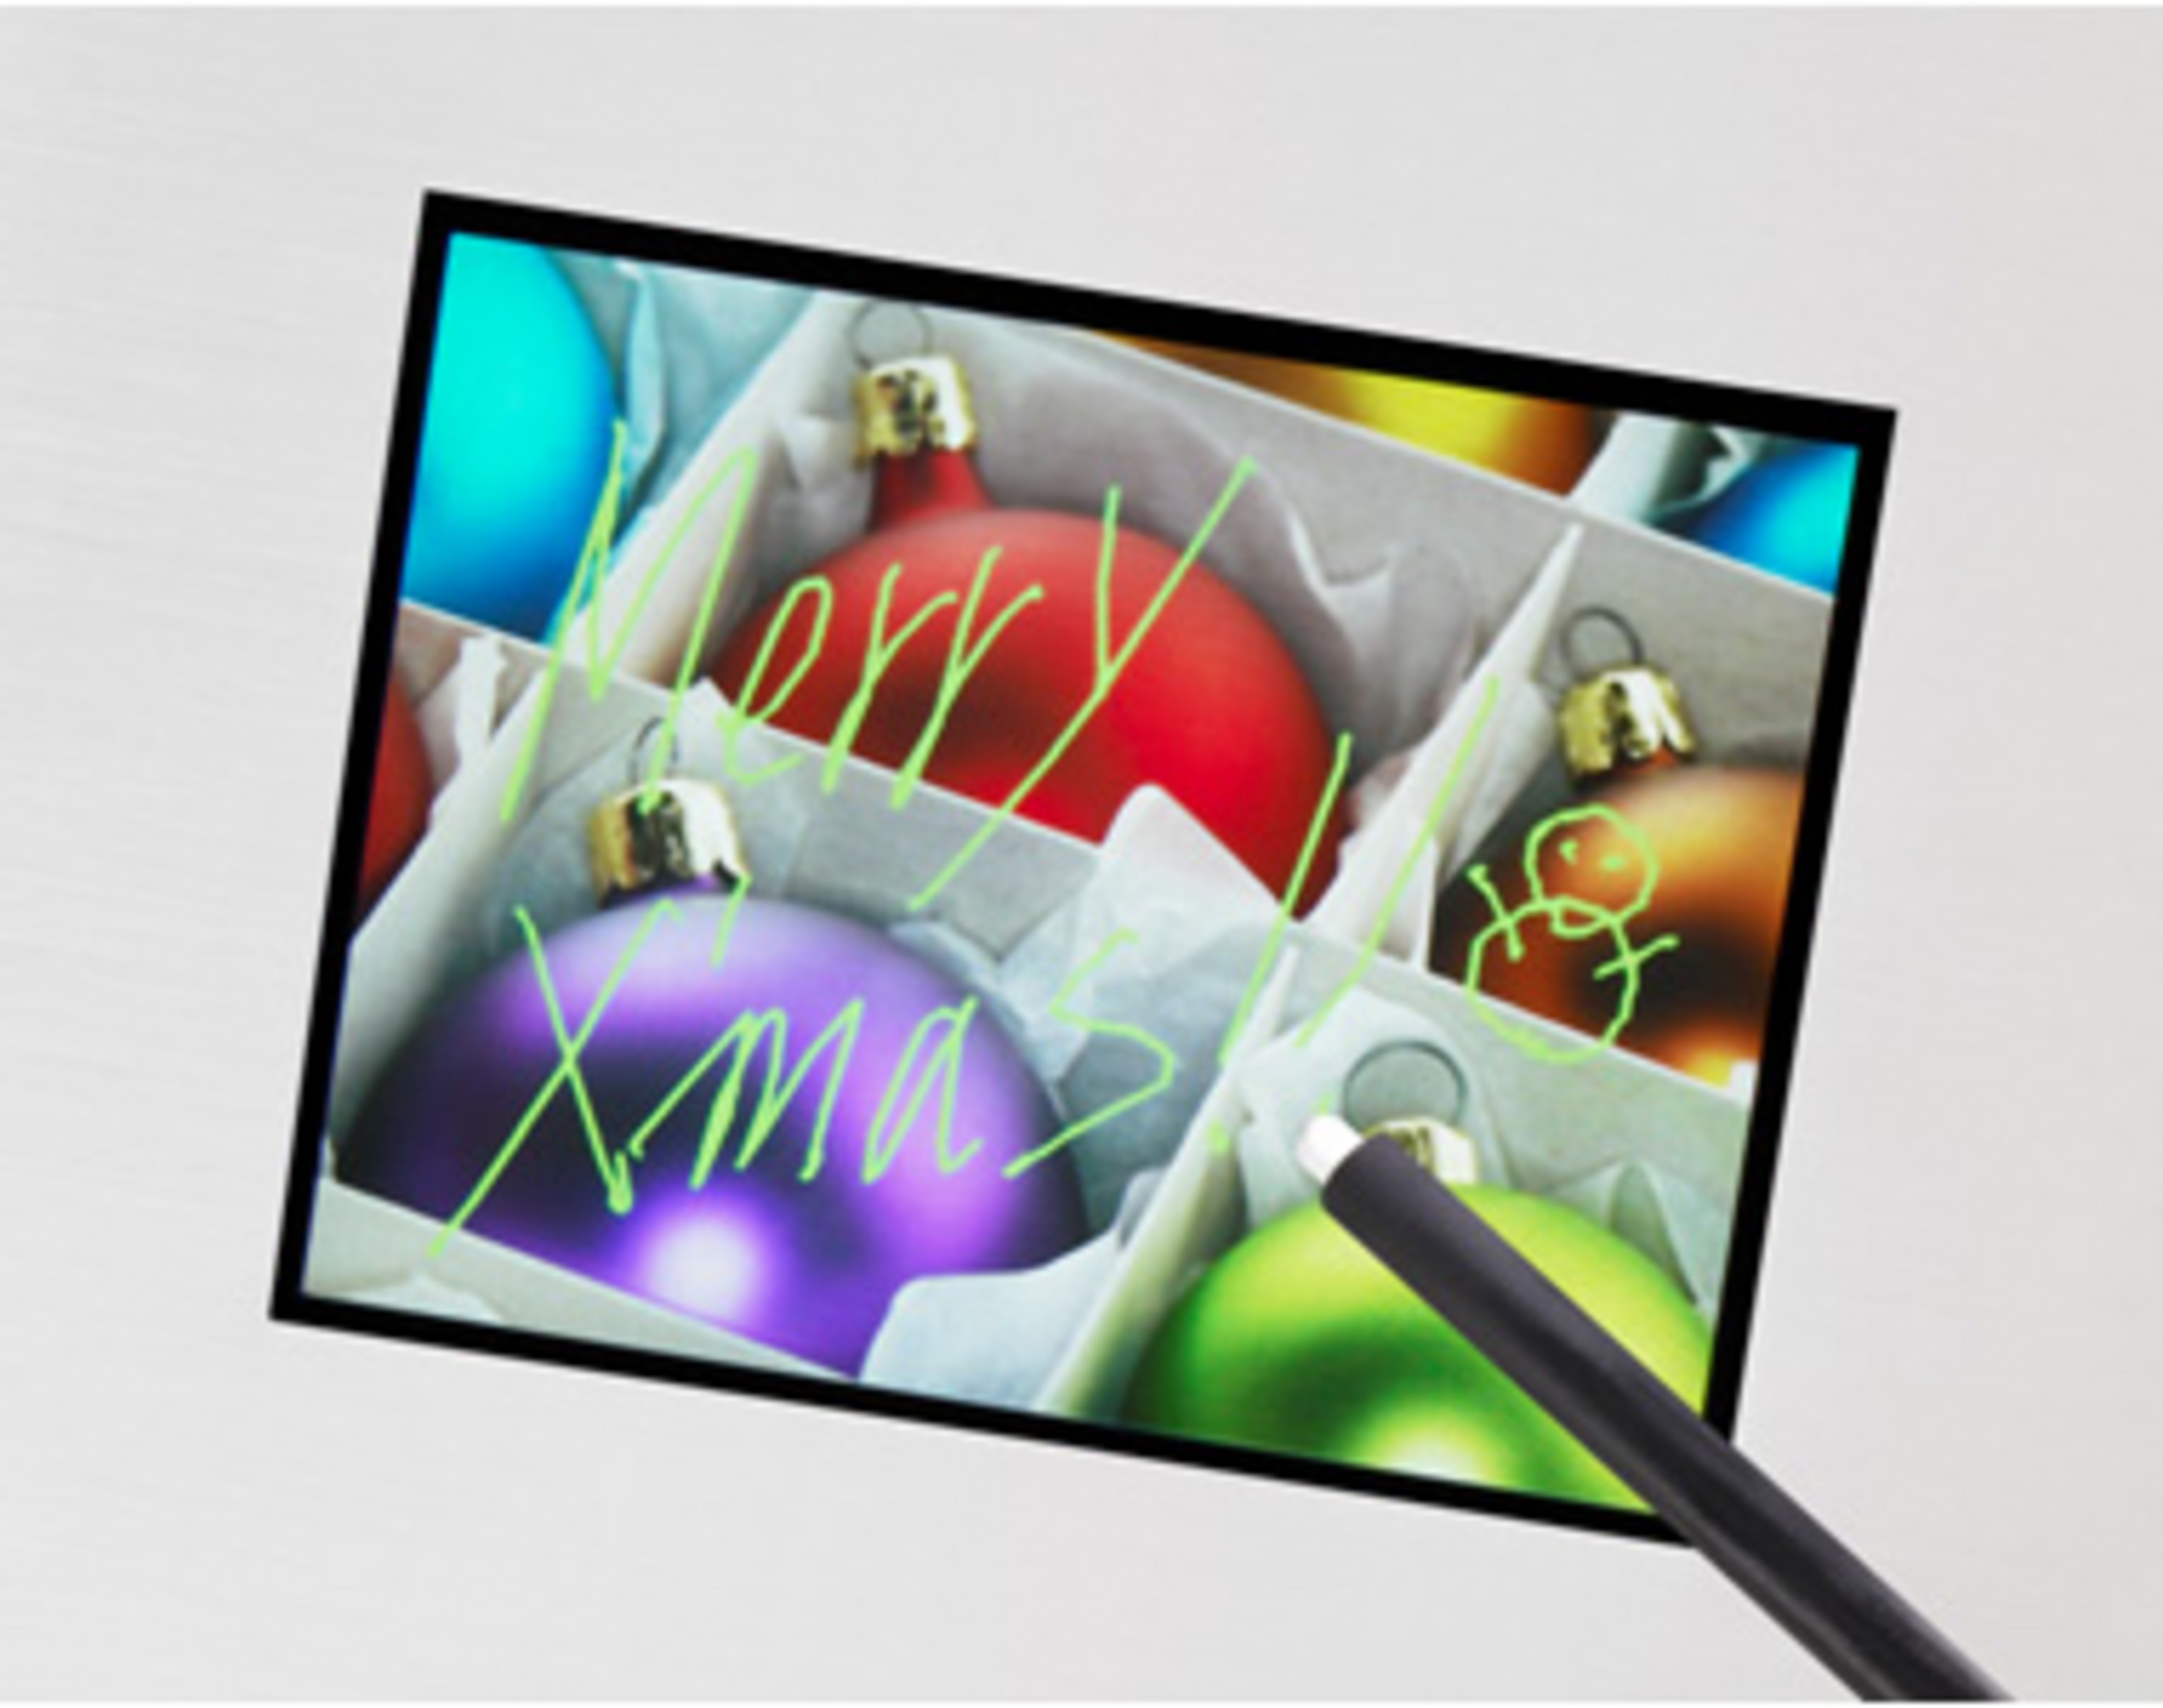 sony-multitouch-lcd.jpg